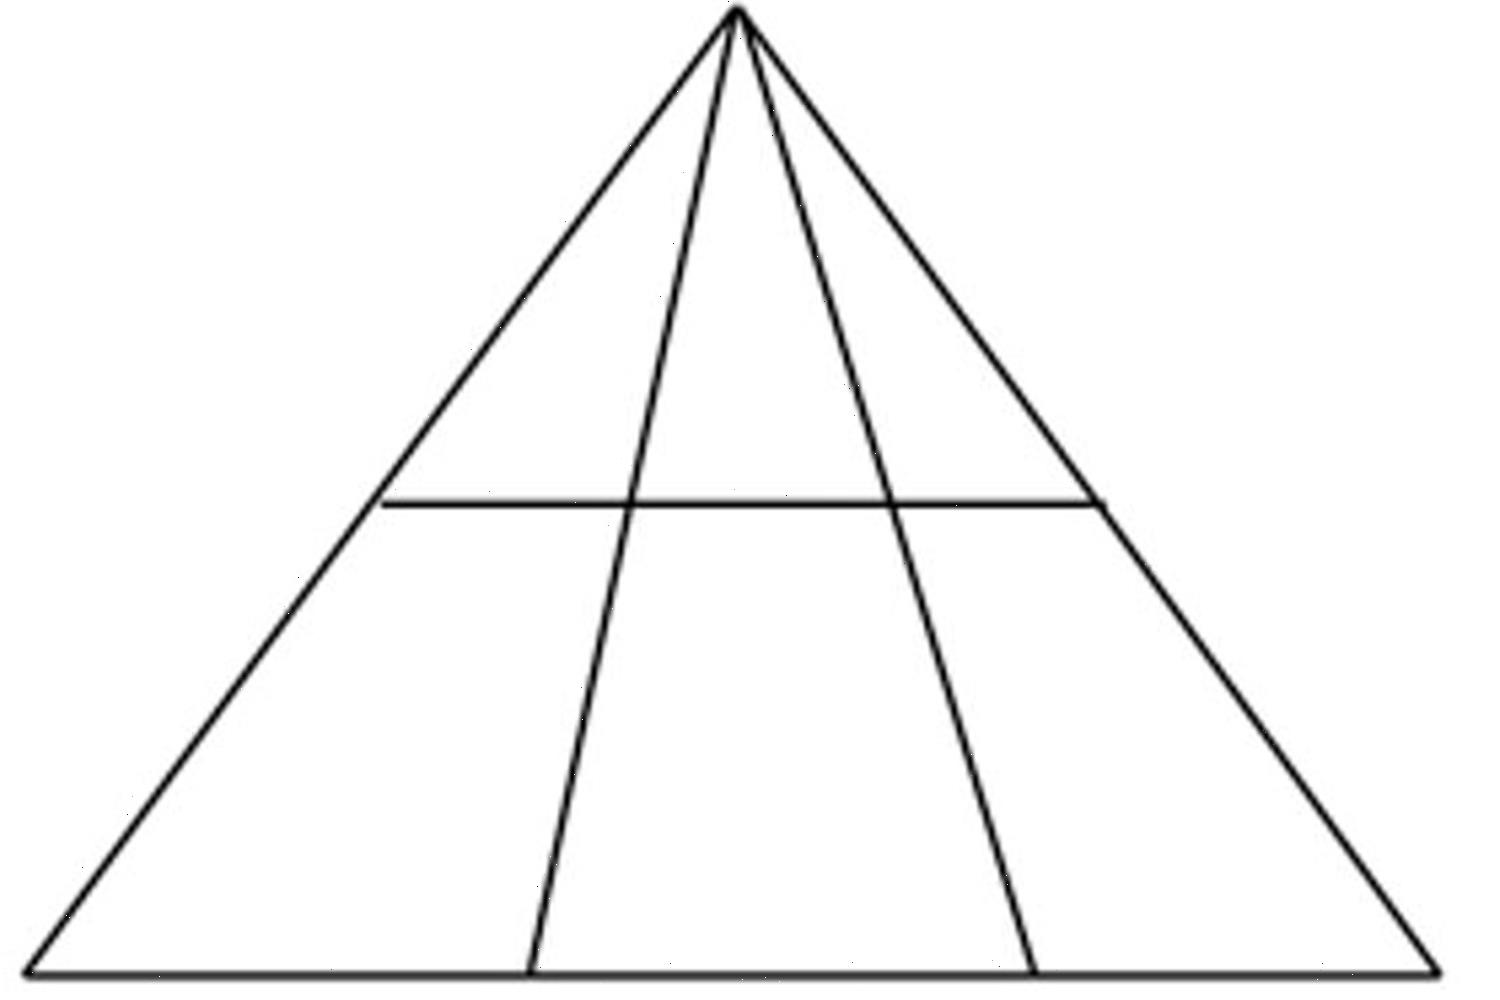 Primary school maths question stumps adults – so can YOU work out how many triangles are in this image?